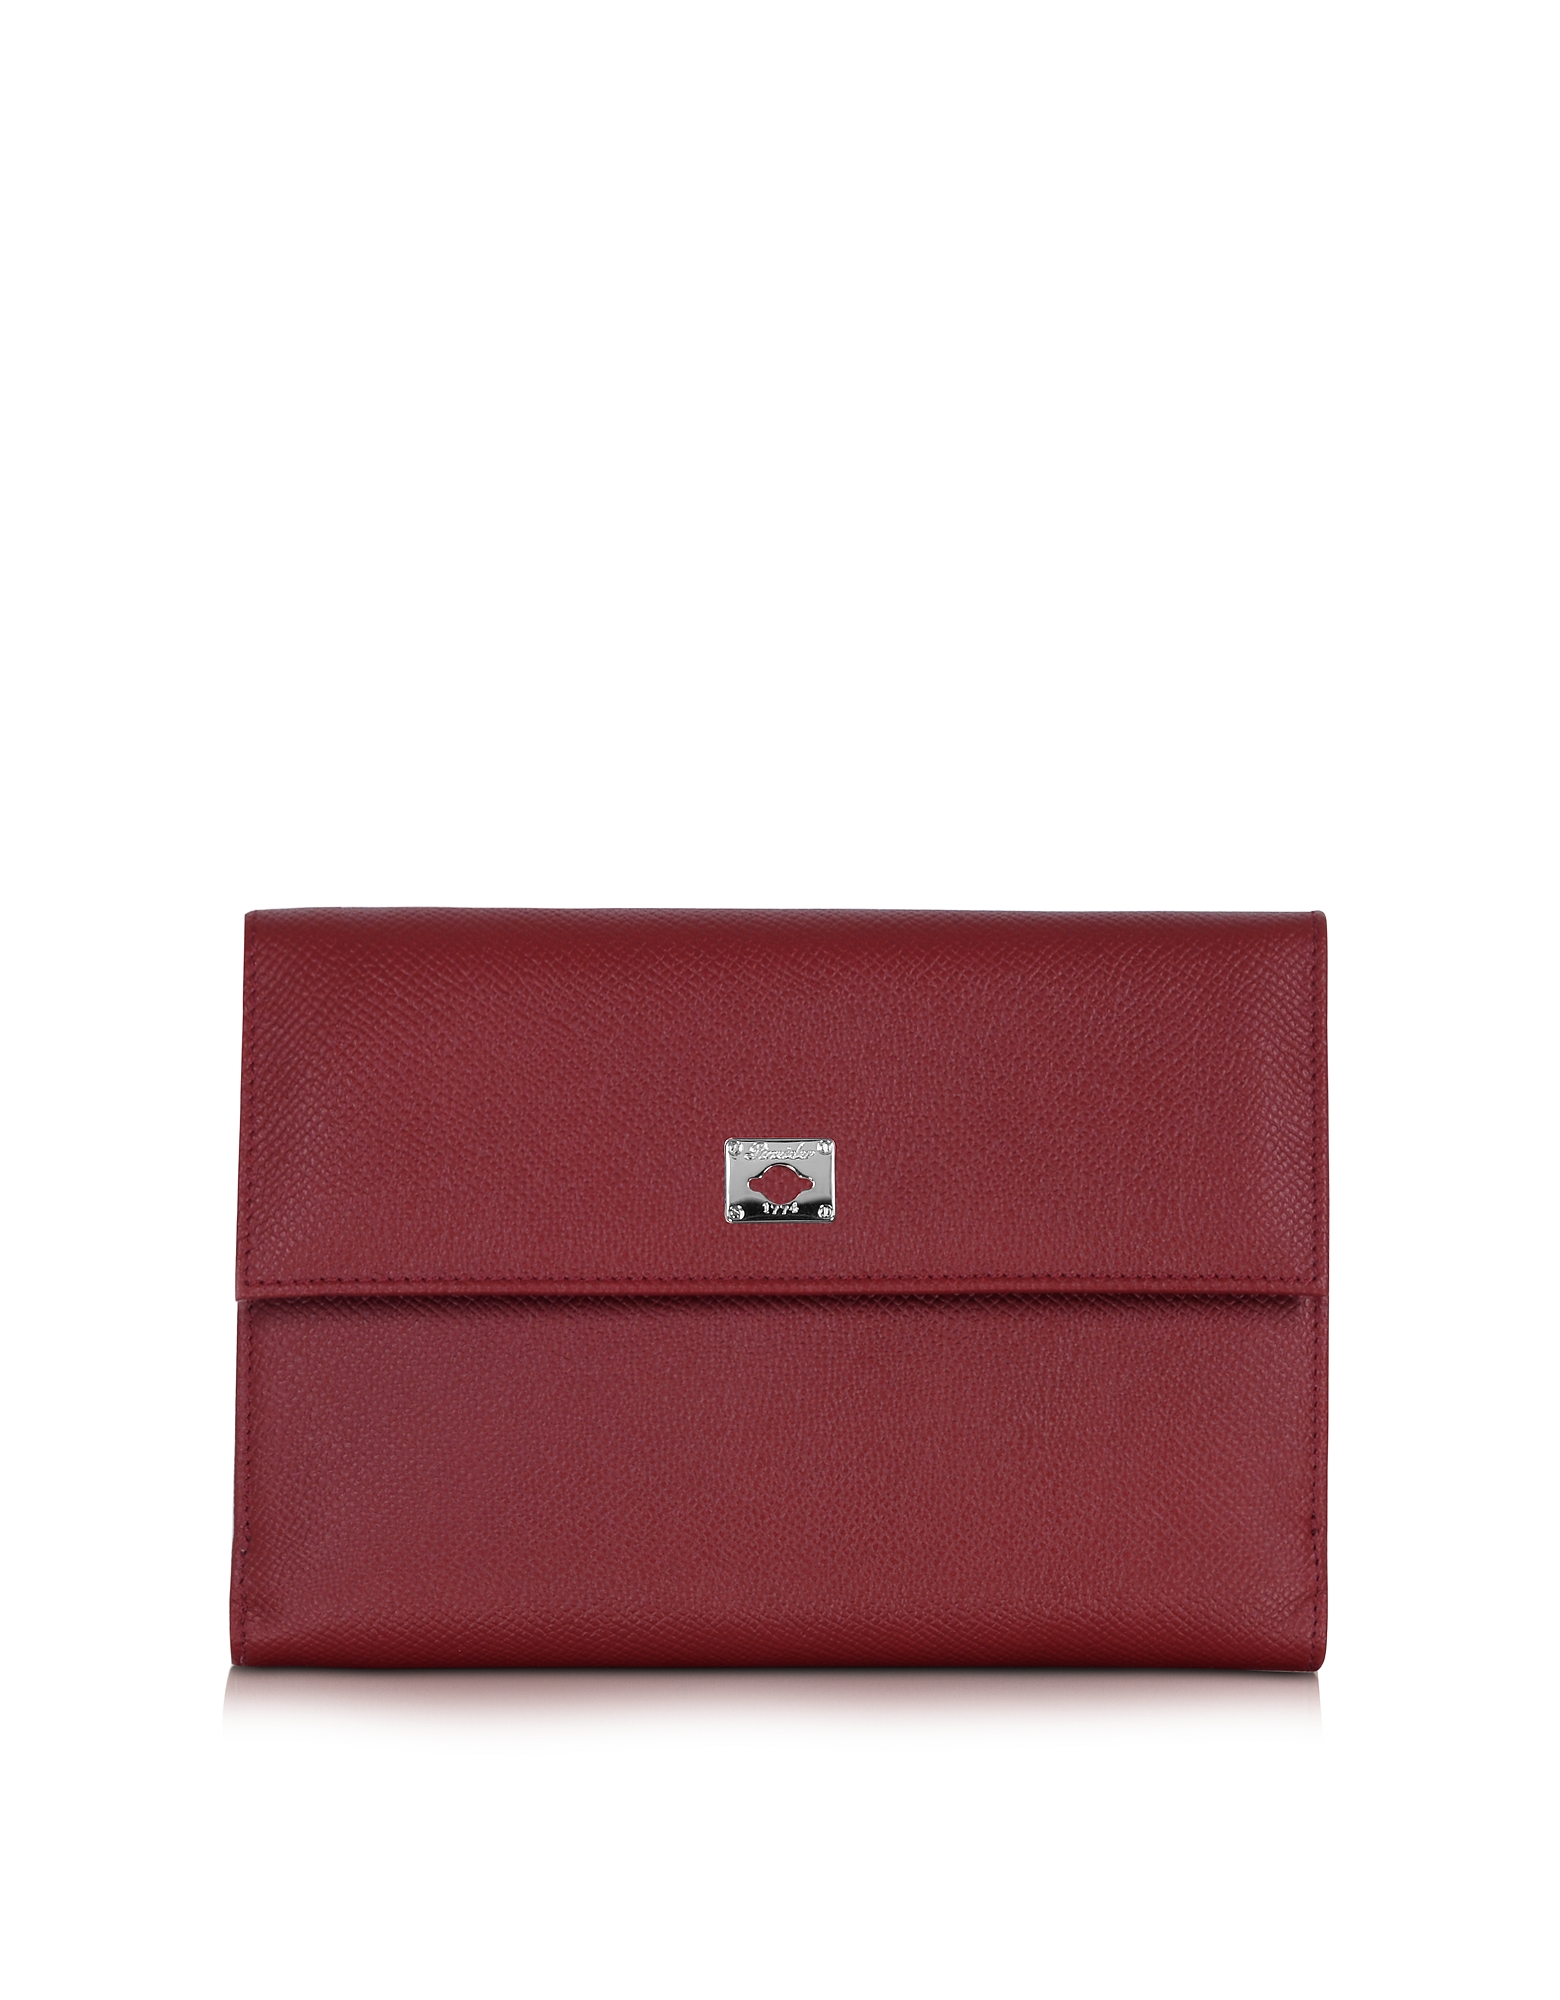 Pineider Handbags, City Chic Burgundy Leather French Purse Wallet